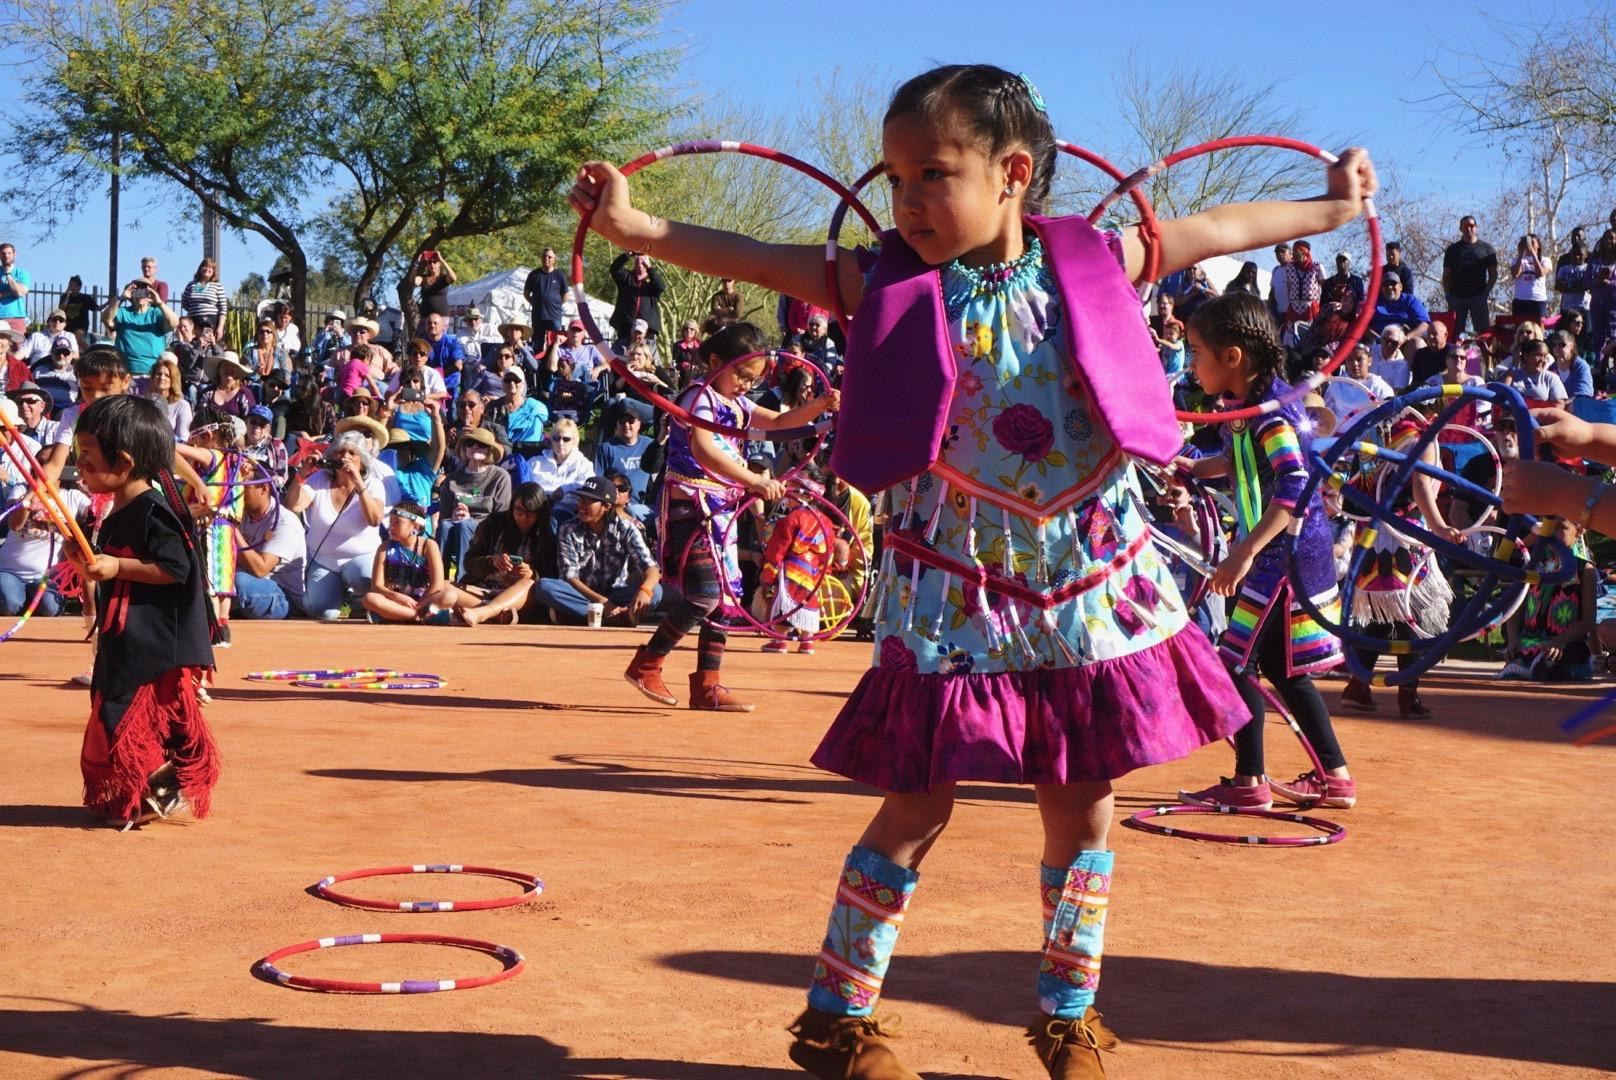 World Championship Hoop Dance Competition